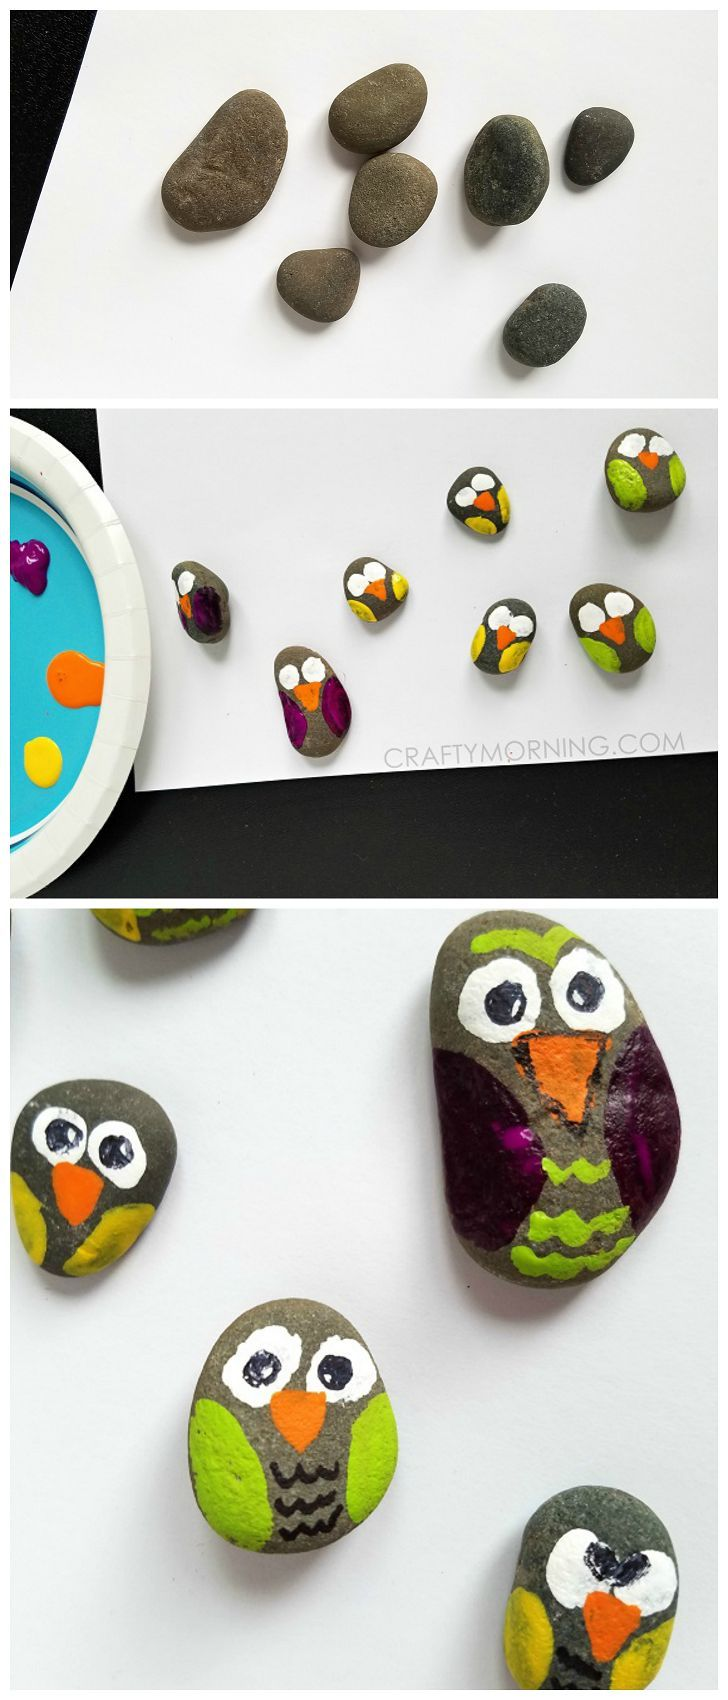 Rock Owl Craft for Kids to make! Super cute idea to find stones in nature.